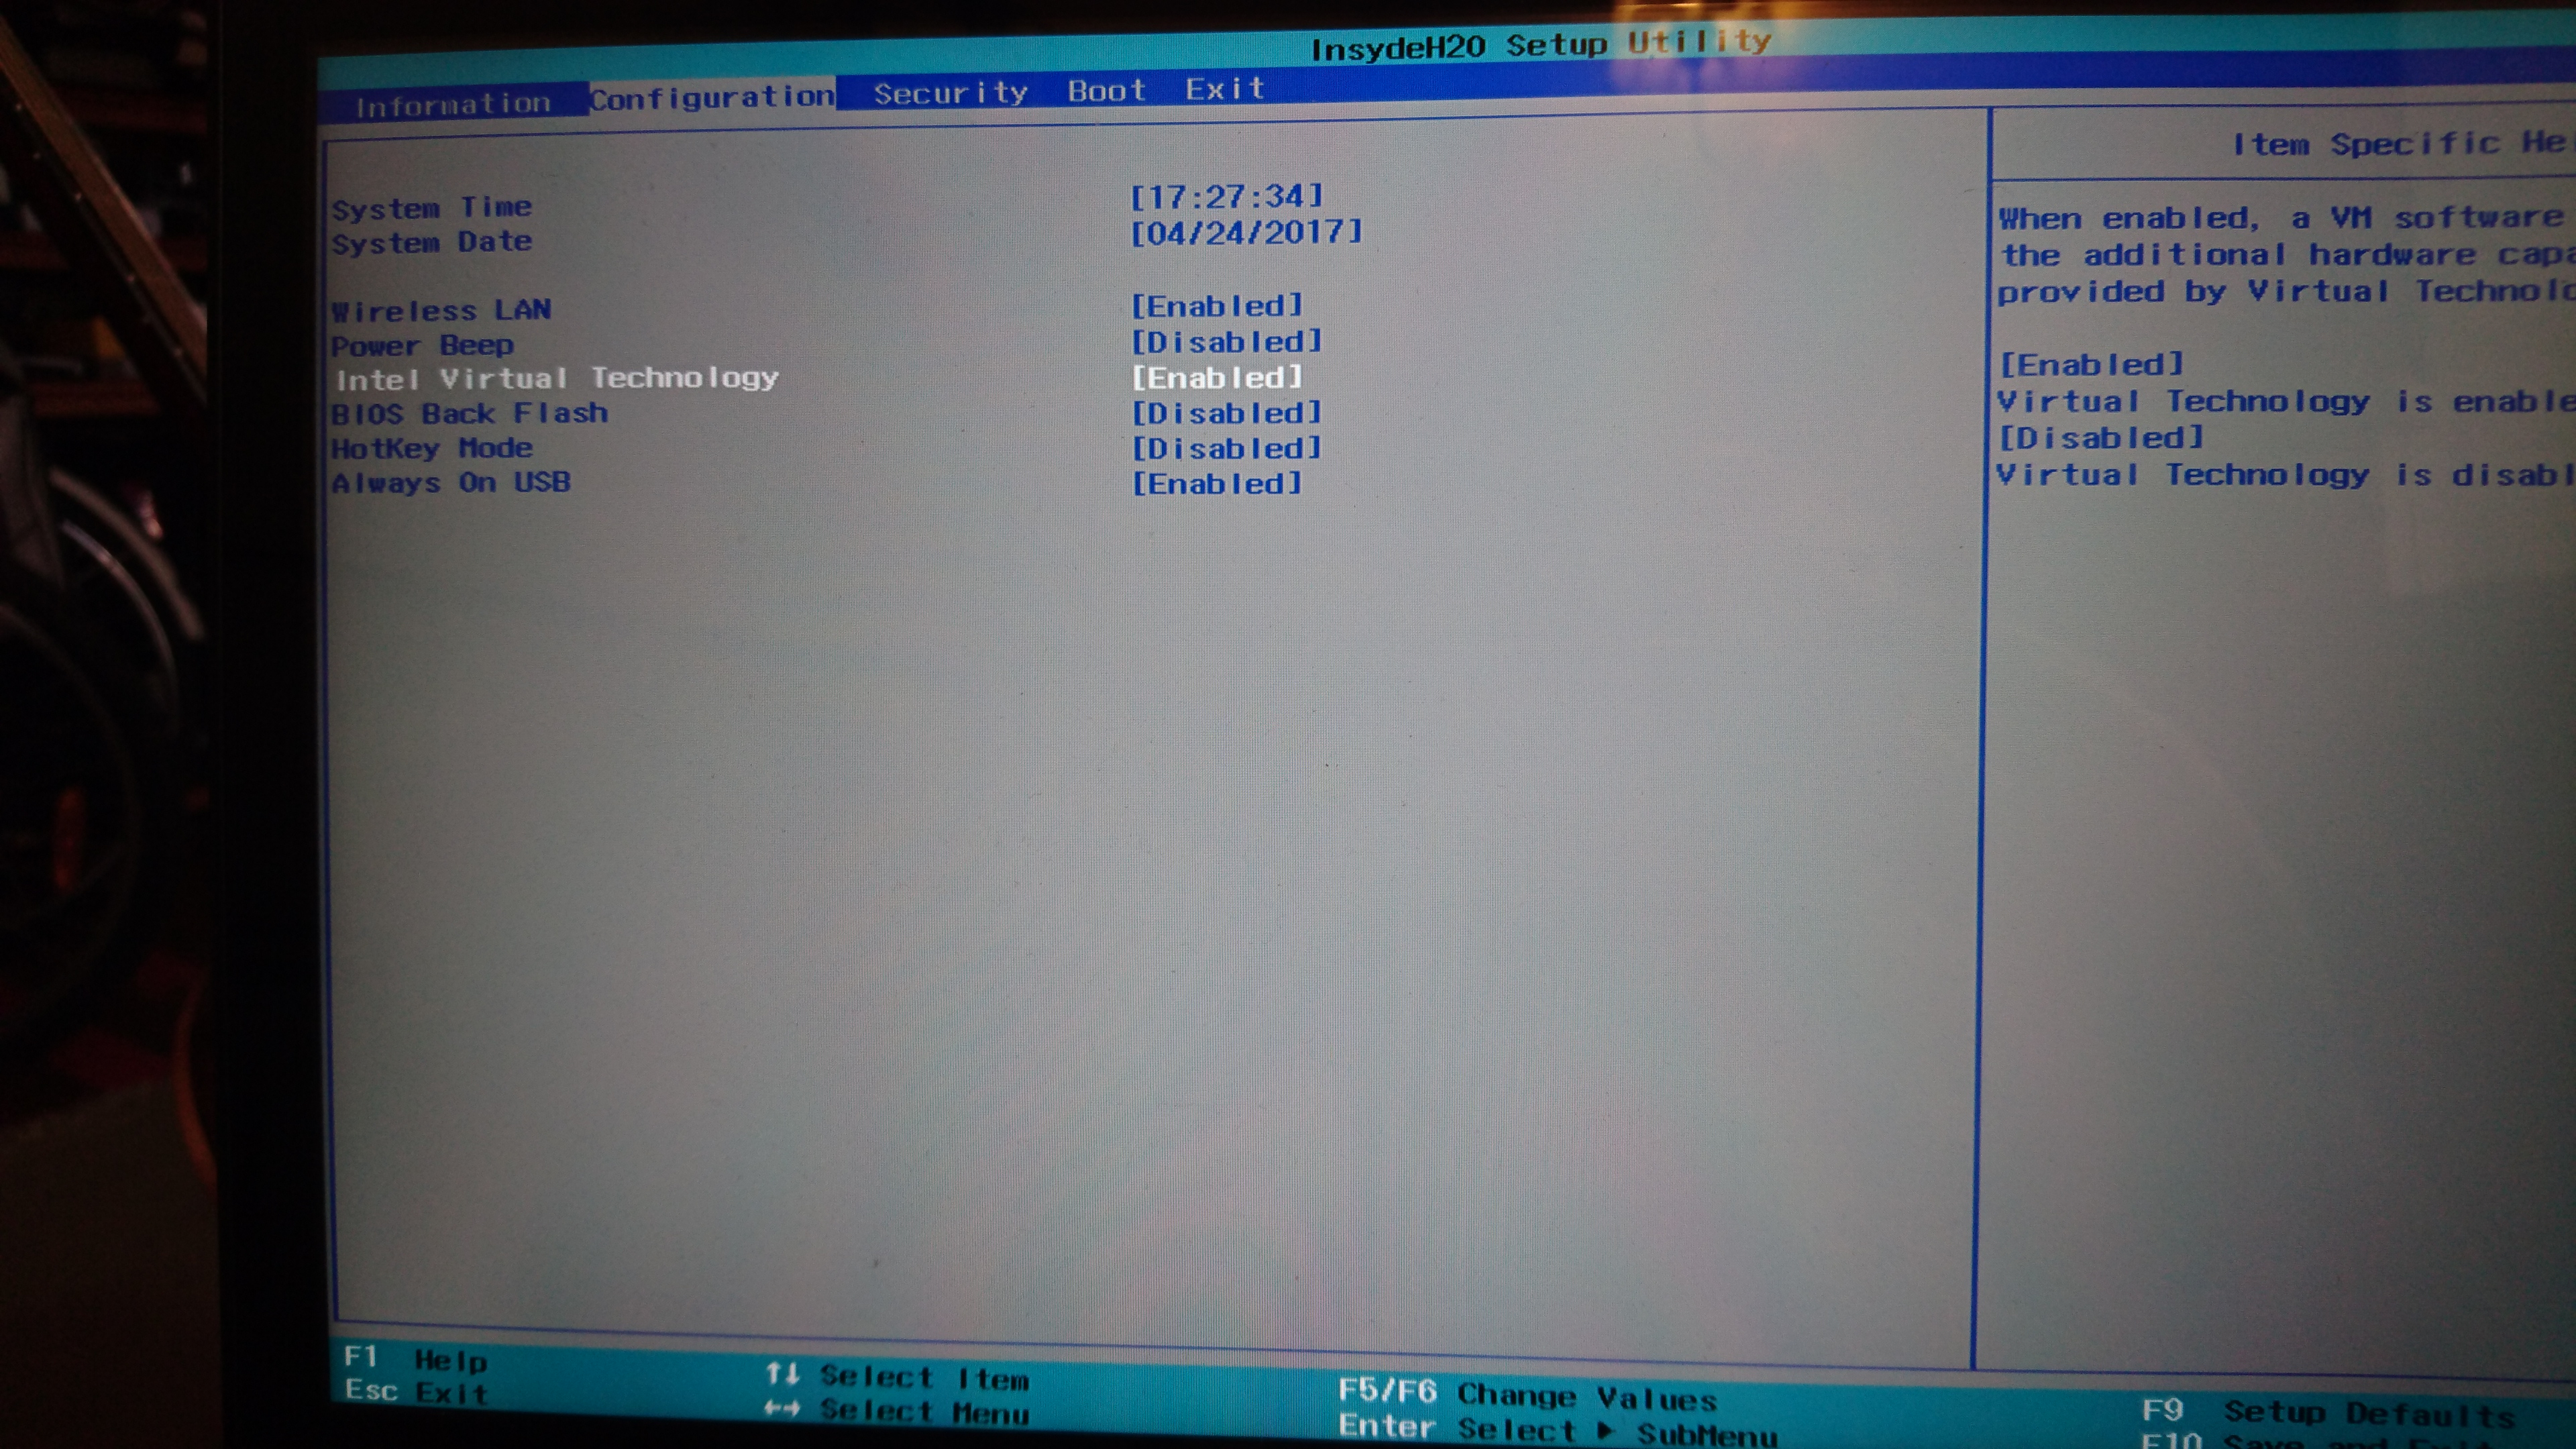 BIOS page of Lenovo Flex 4 IdeaPad - Virtualization setting